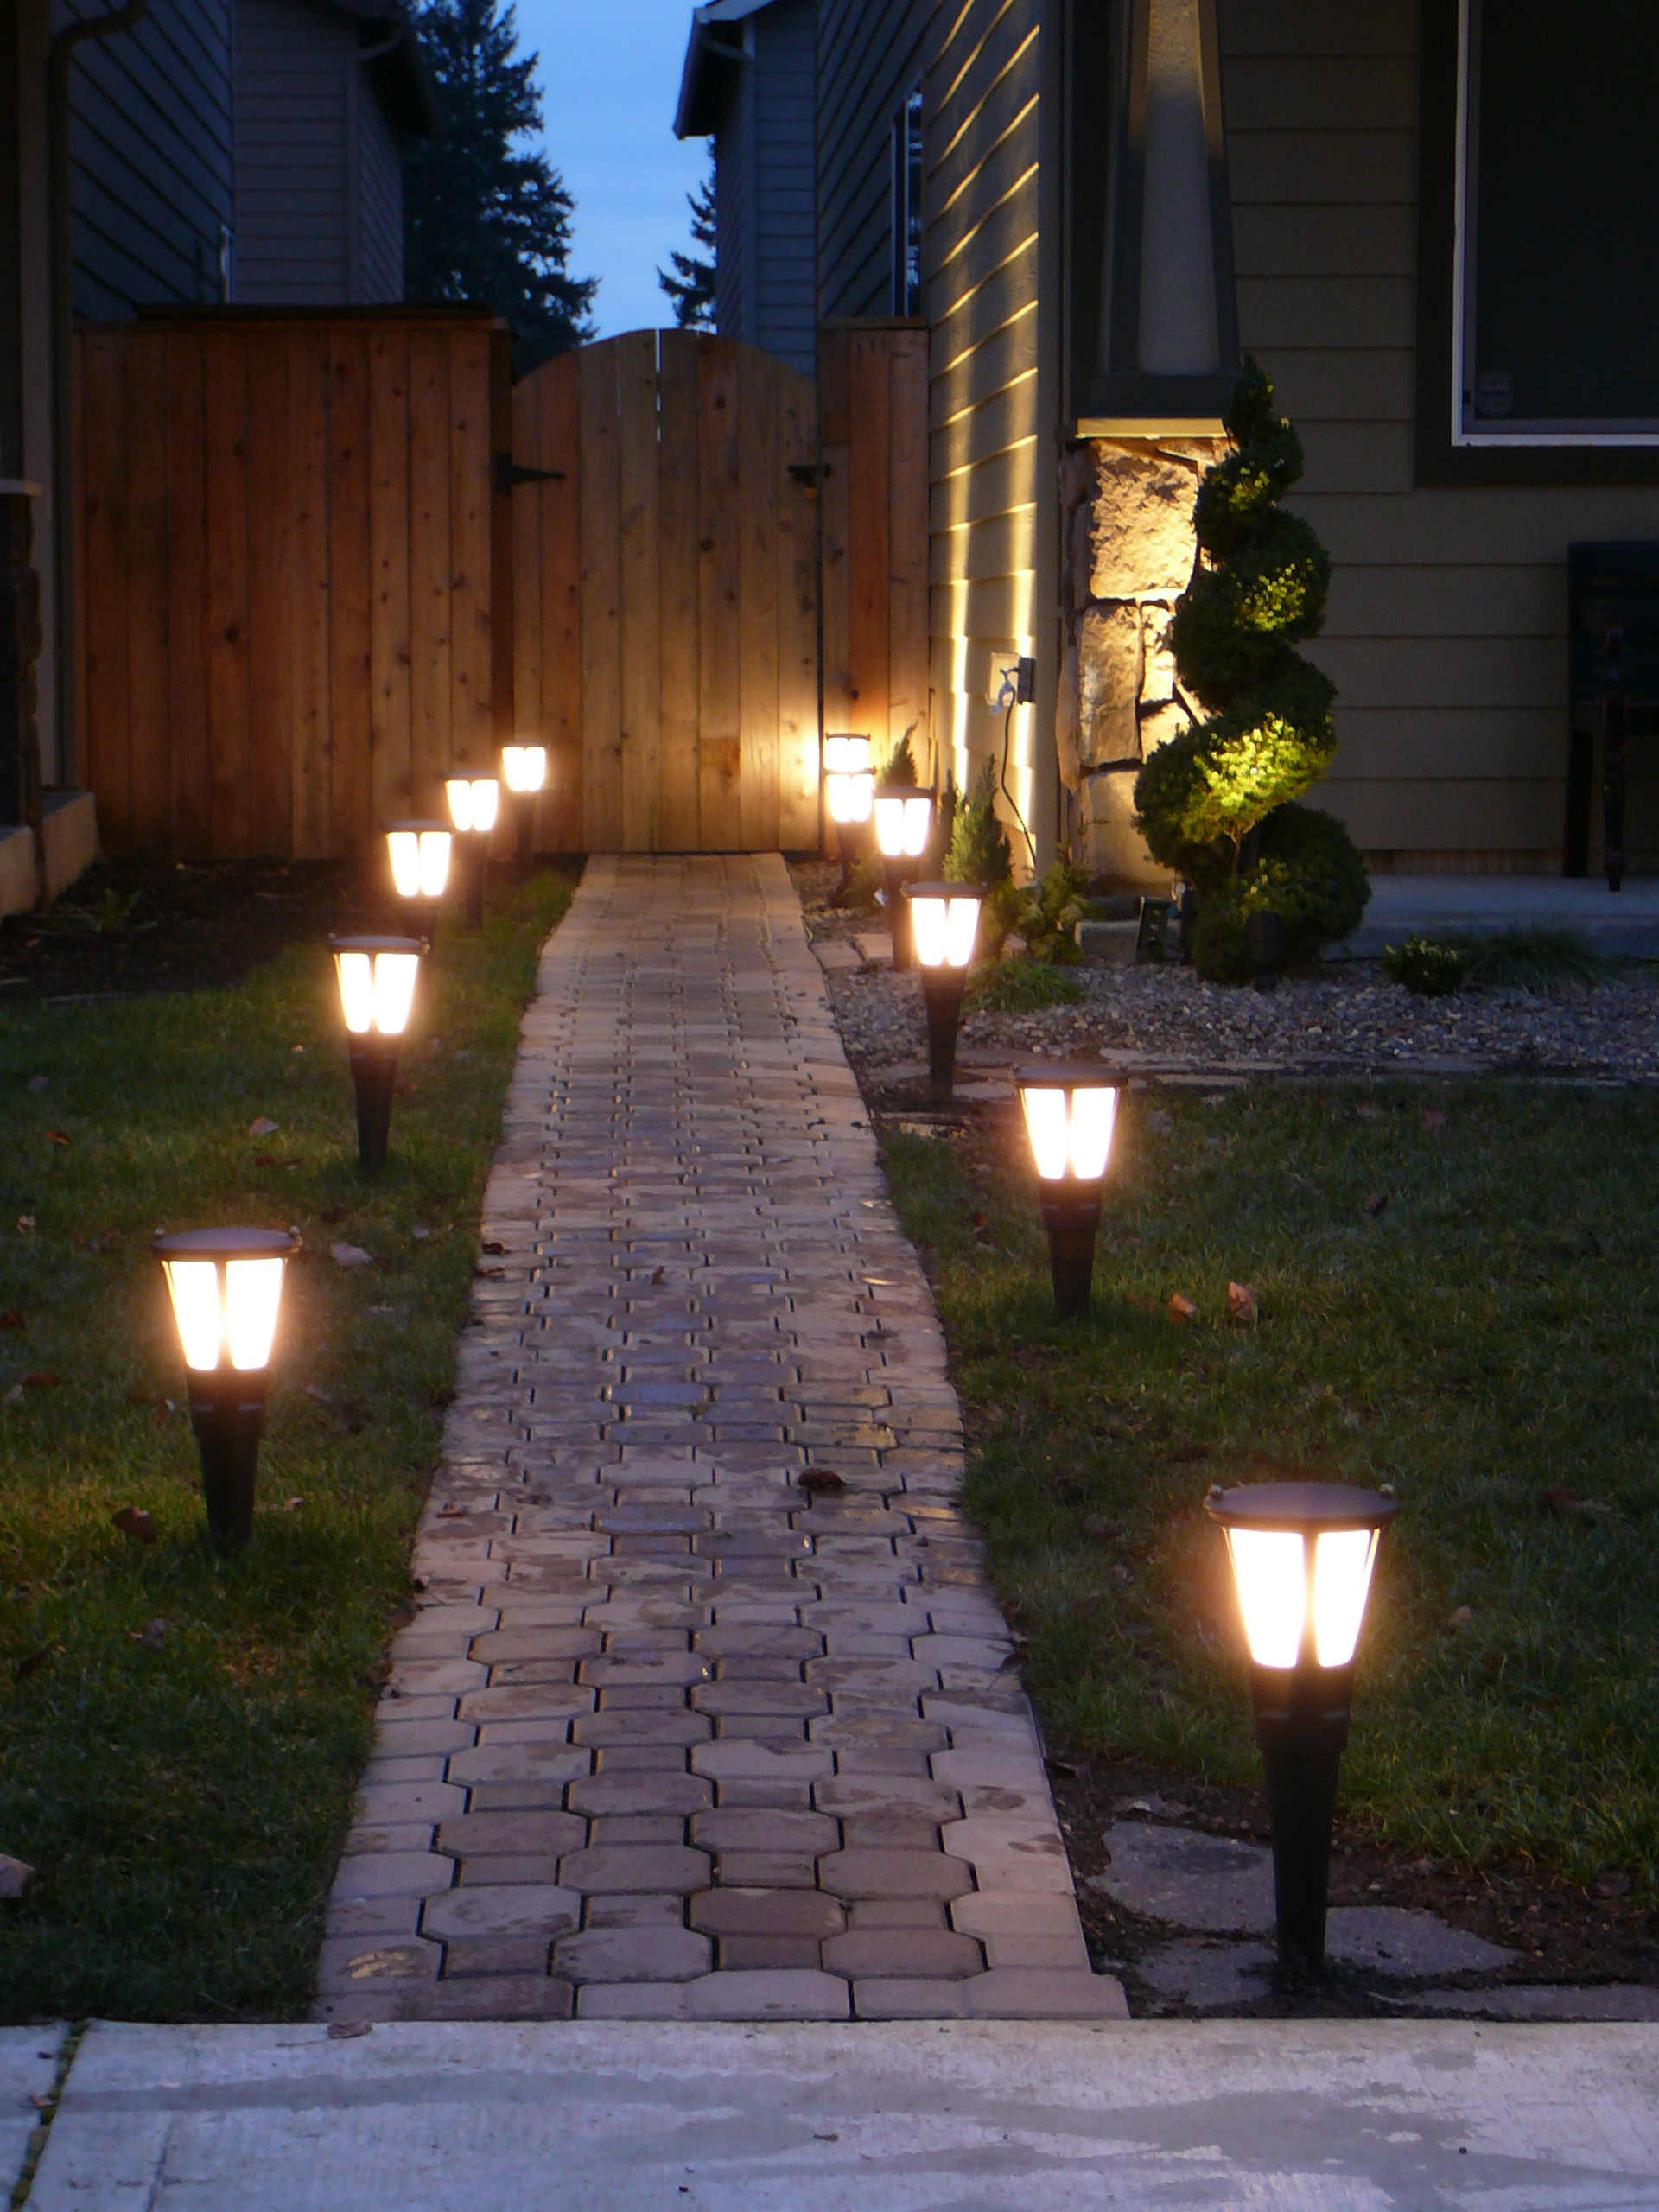 Outdoor Solar Garden Lights 5 Ways To Add Curb Appeal Diary Of The 21st Century